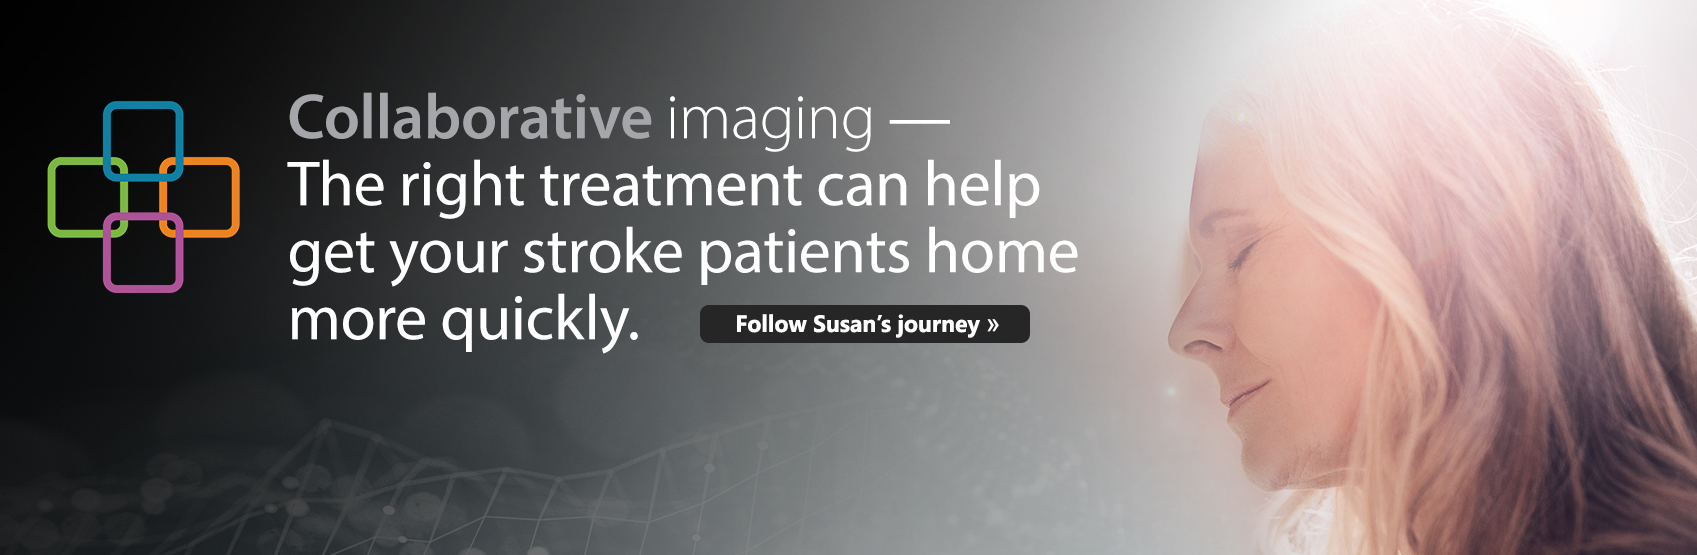 Collabortive imaging - The right treatment can help get your stroke patients home more quickly. Follow Susan's journey.